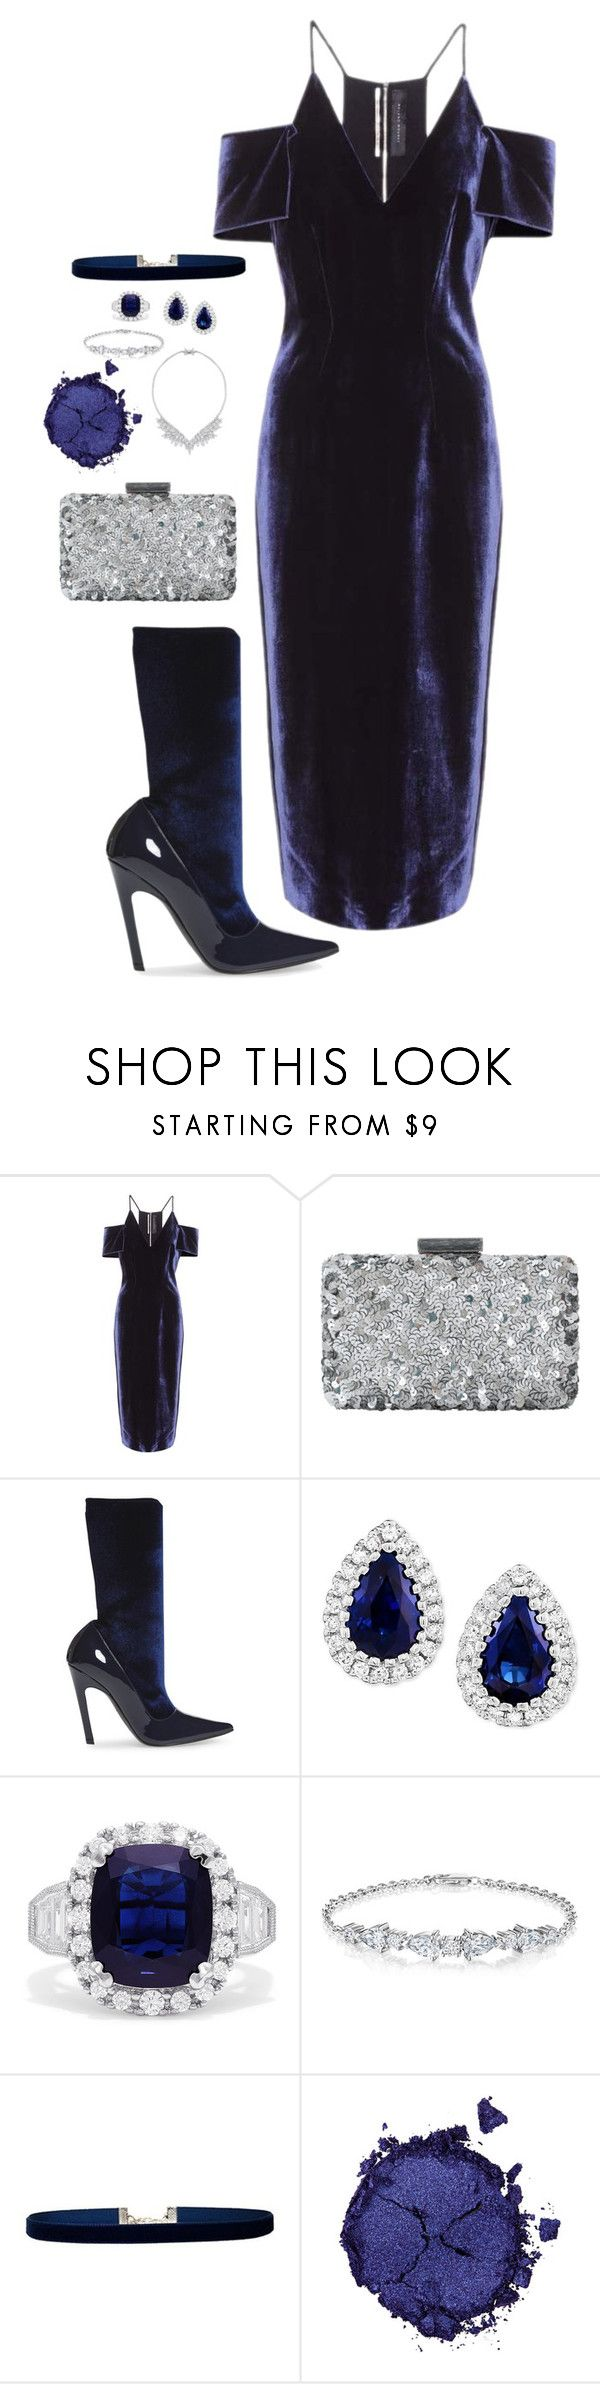 """""""Chic"""" by modei ❤ liked on Polyvore featuring Roland Mouret, Oscar de la Renta, Balenciaga, Effy Jewelry, Lulu in the Sky and Pat McGrath"""